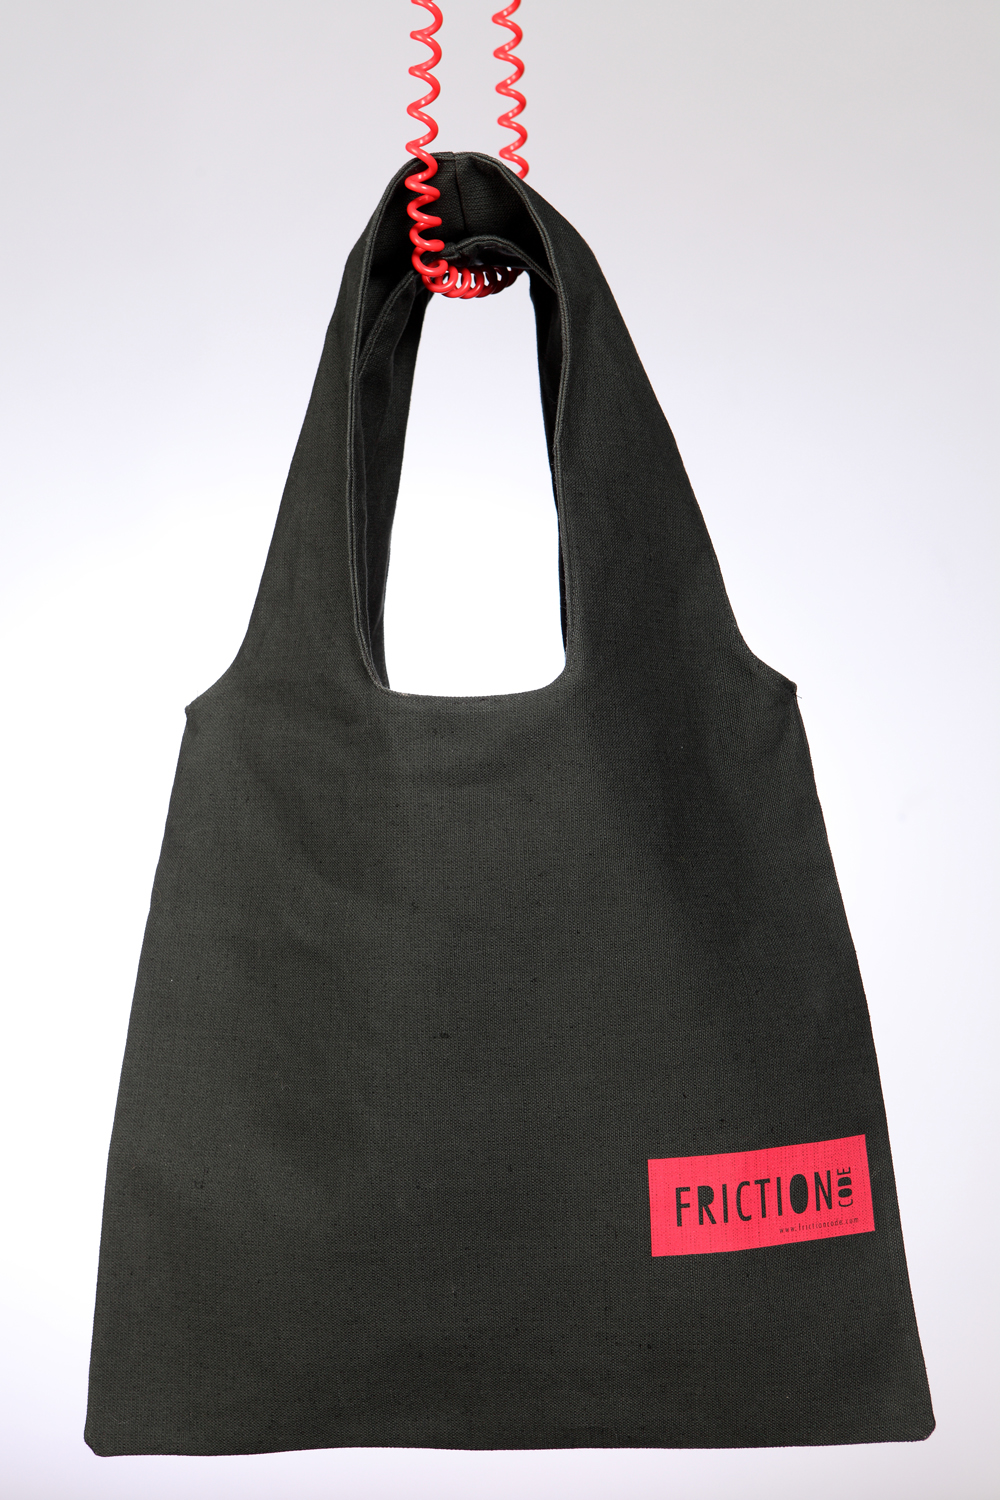 Dark green bag with red label